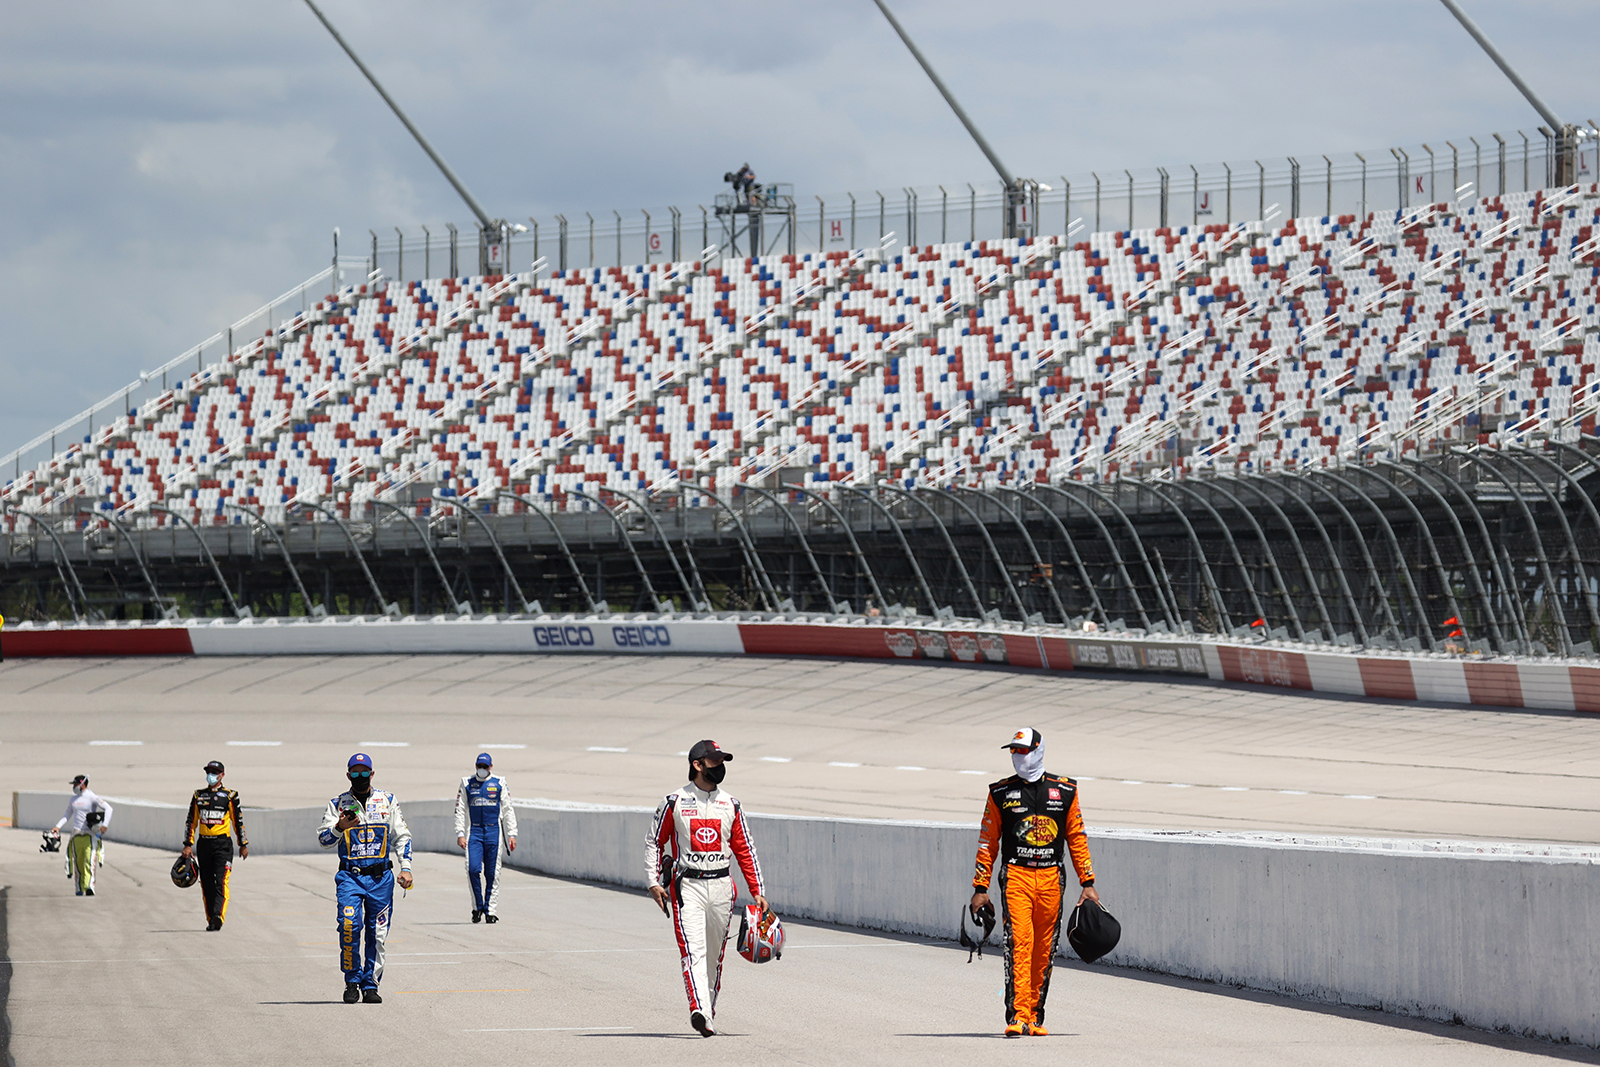 NASCAR to honor fallen veterans at Coca-Cola 600 race held without spectators